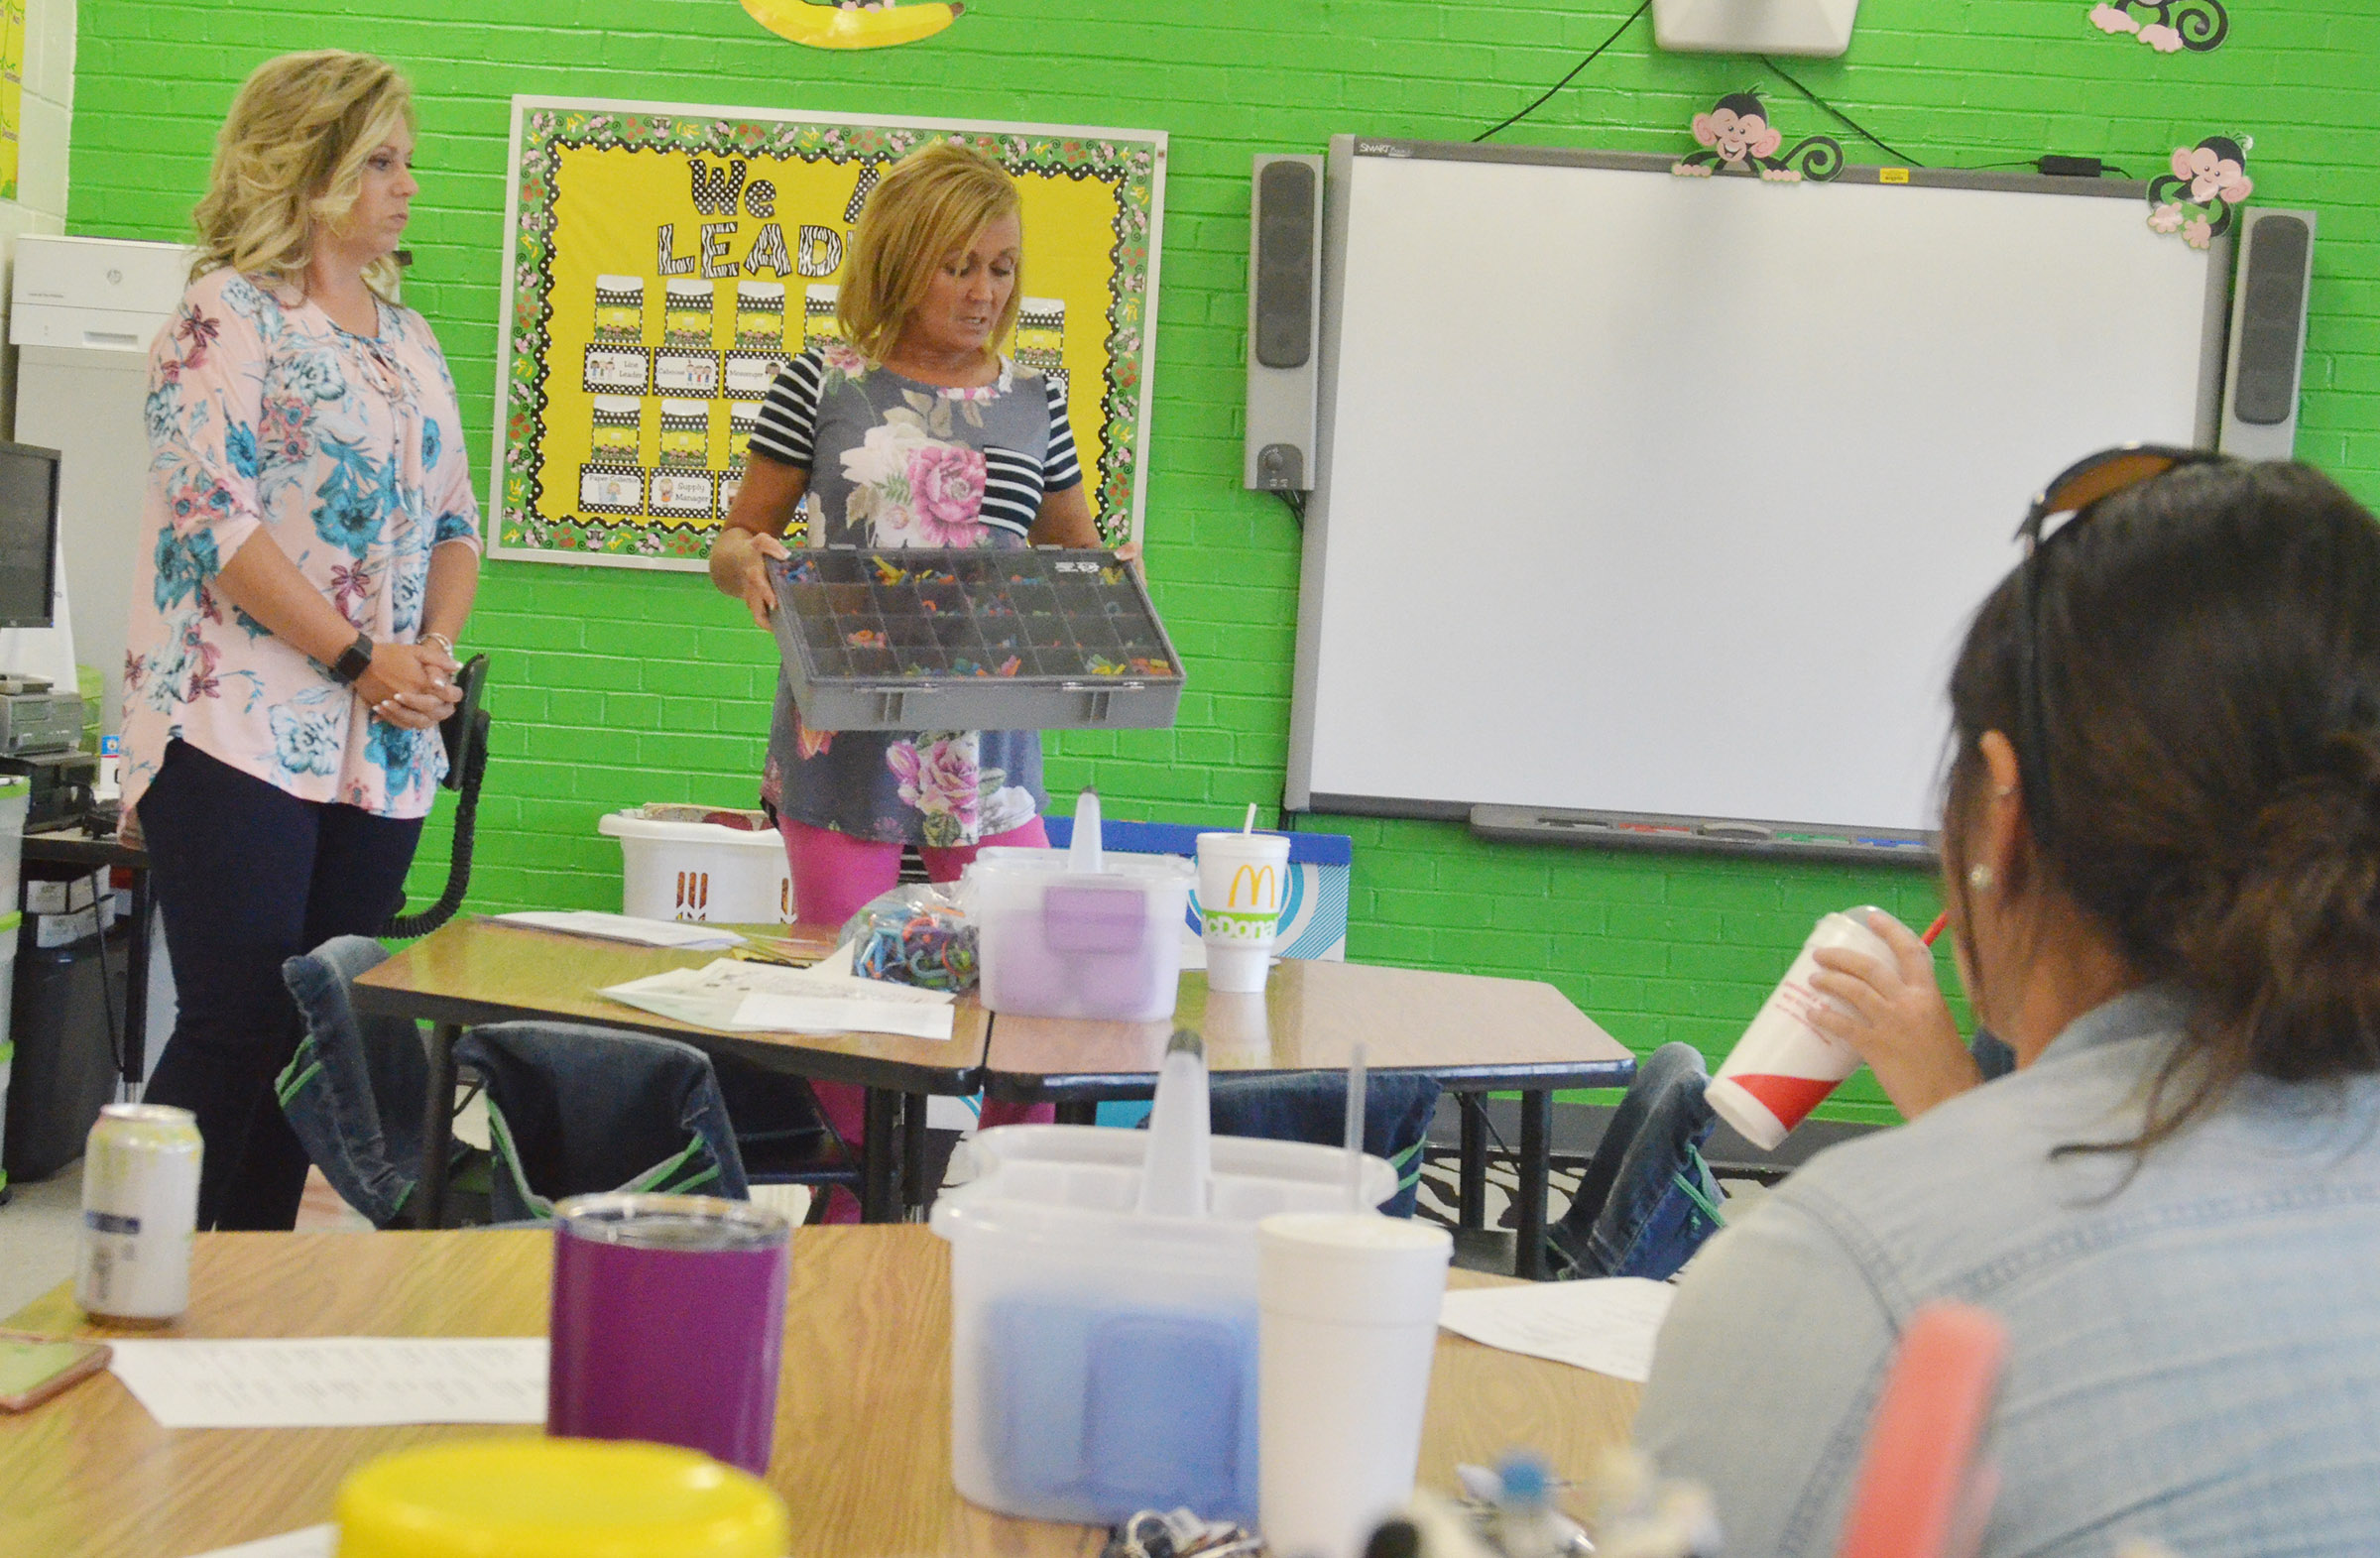 CES kindergarten teachers Nikki Price, at left, and Lisa Wiseman talk about using centers in the classroom.